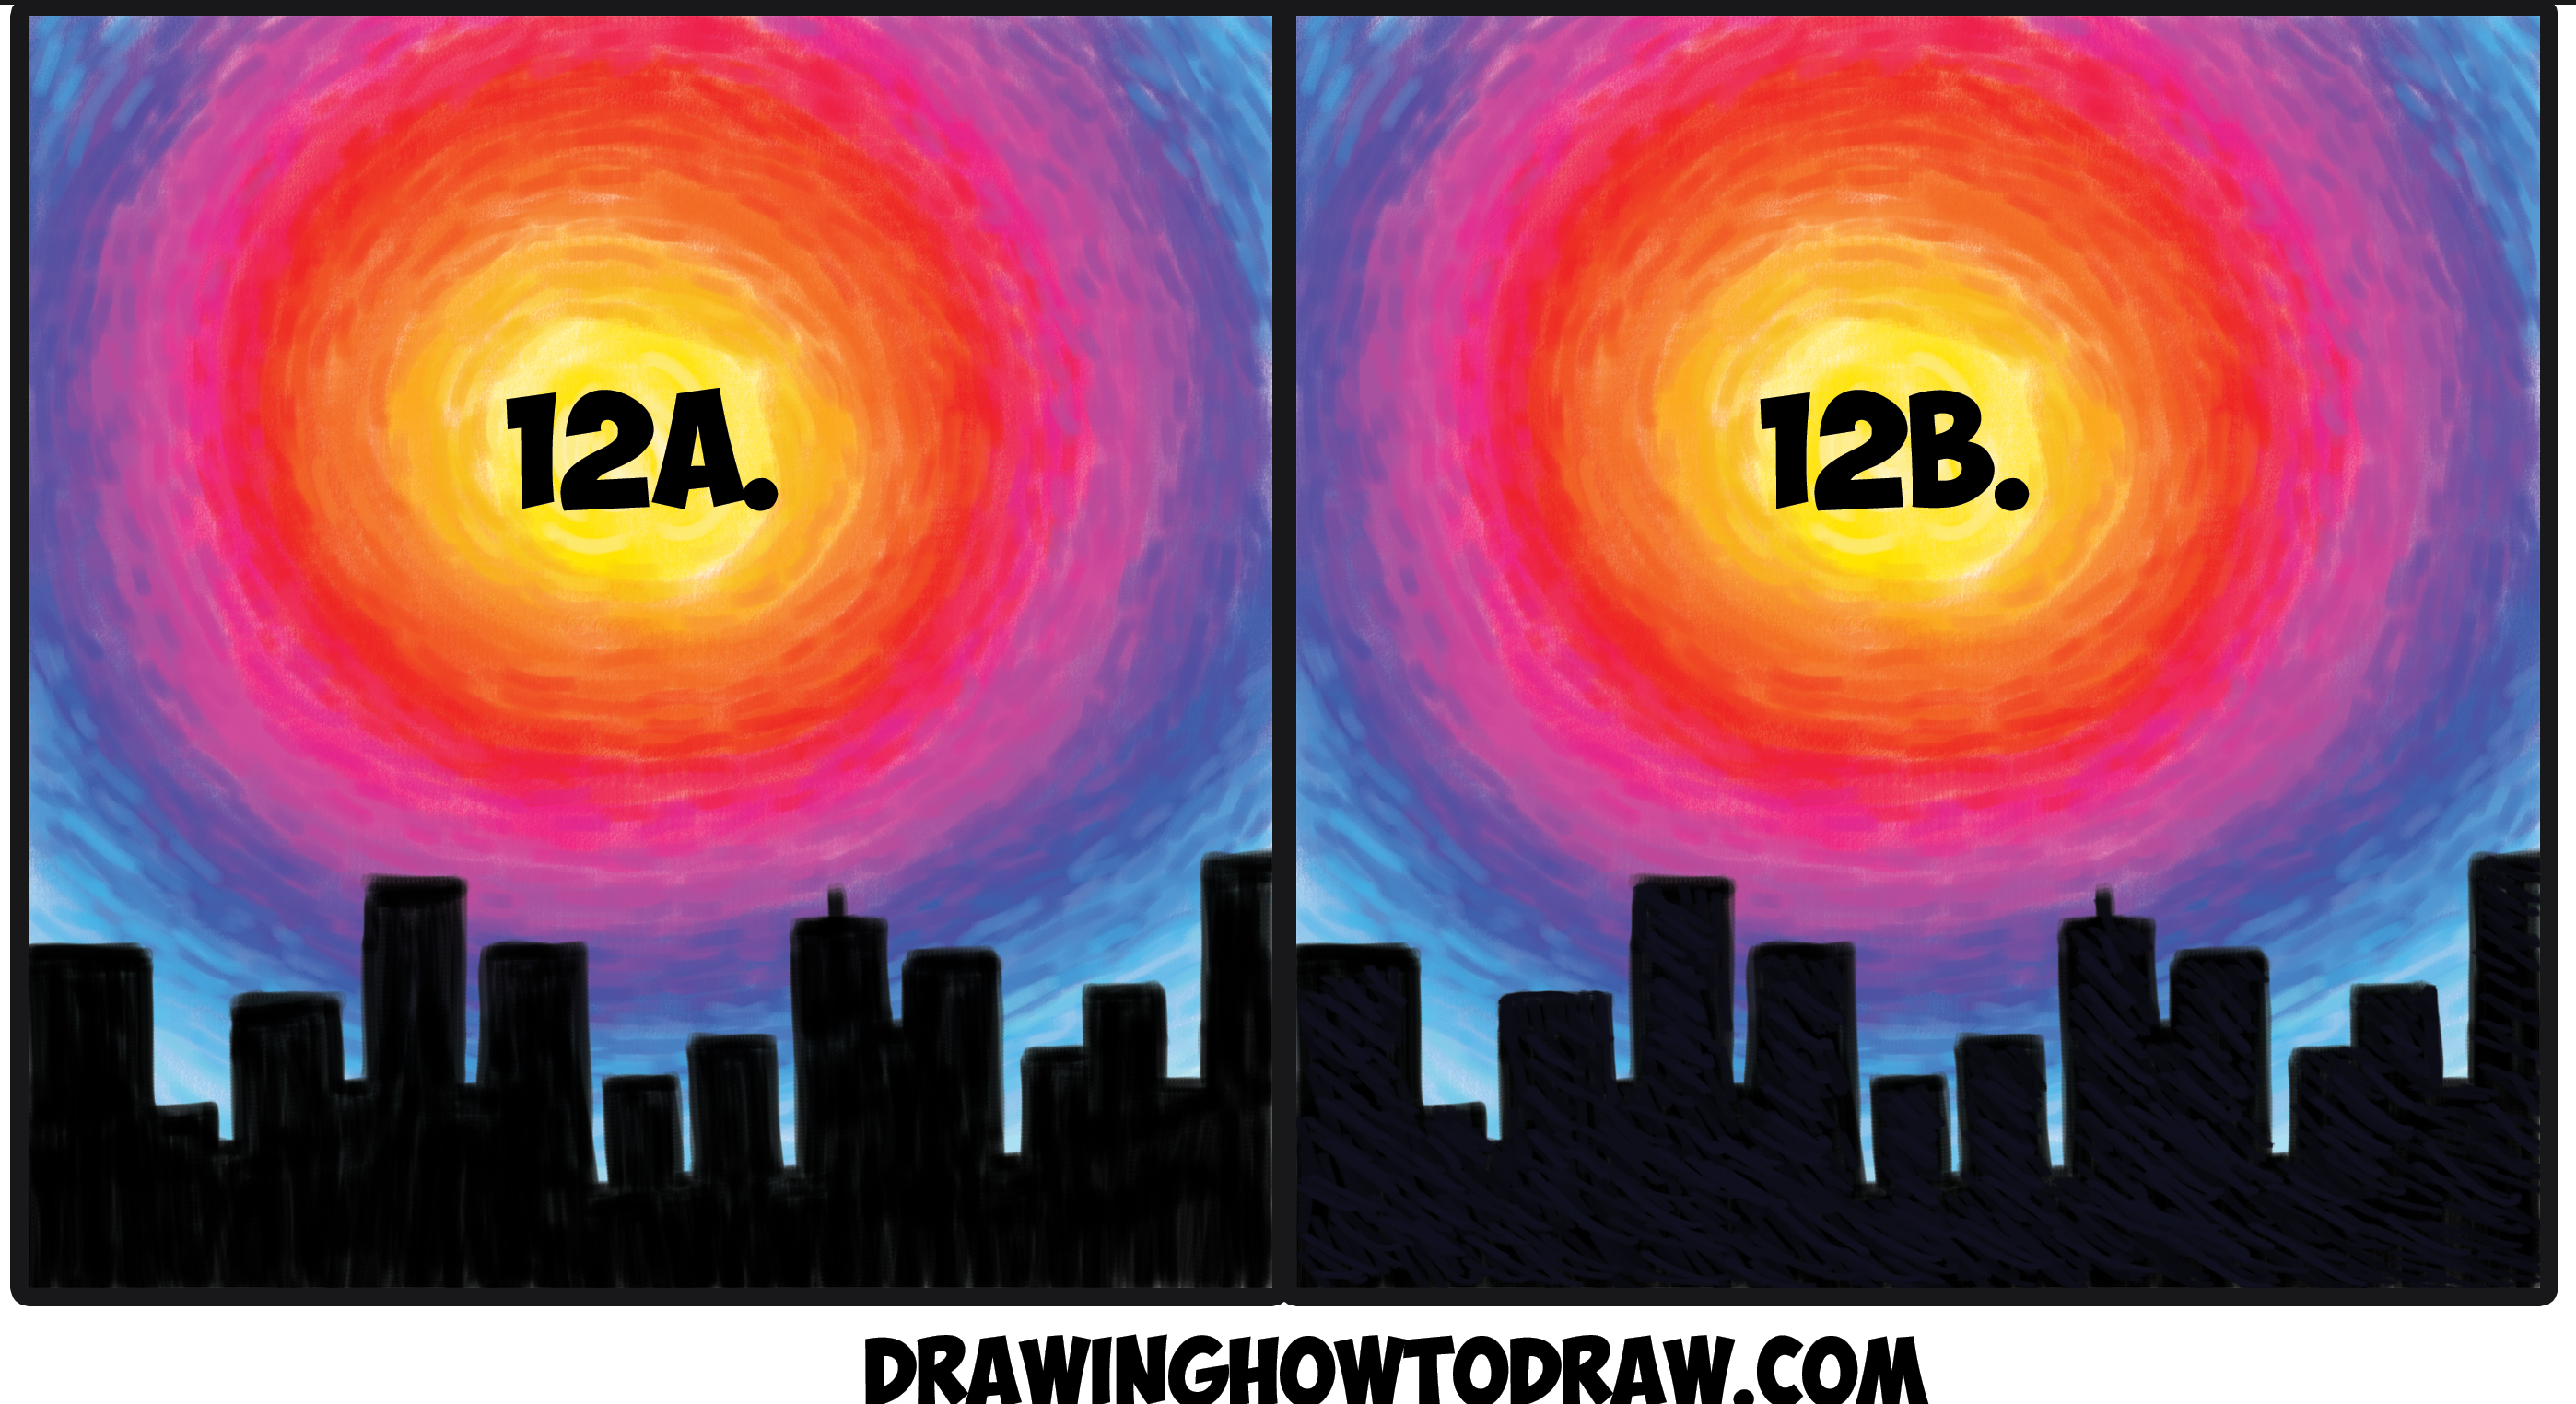 Learn How to Draw or Paint Sunset with Black City Silhouette Cityscape Simple Steps with Colored Pencils, Pastels, Acrylics, or Markers Tutorial for Kids or Beginners